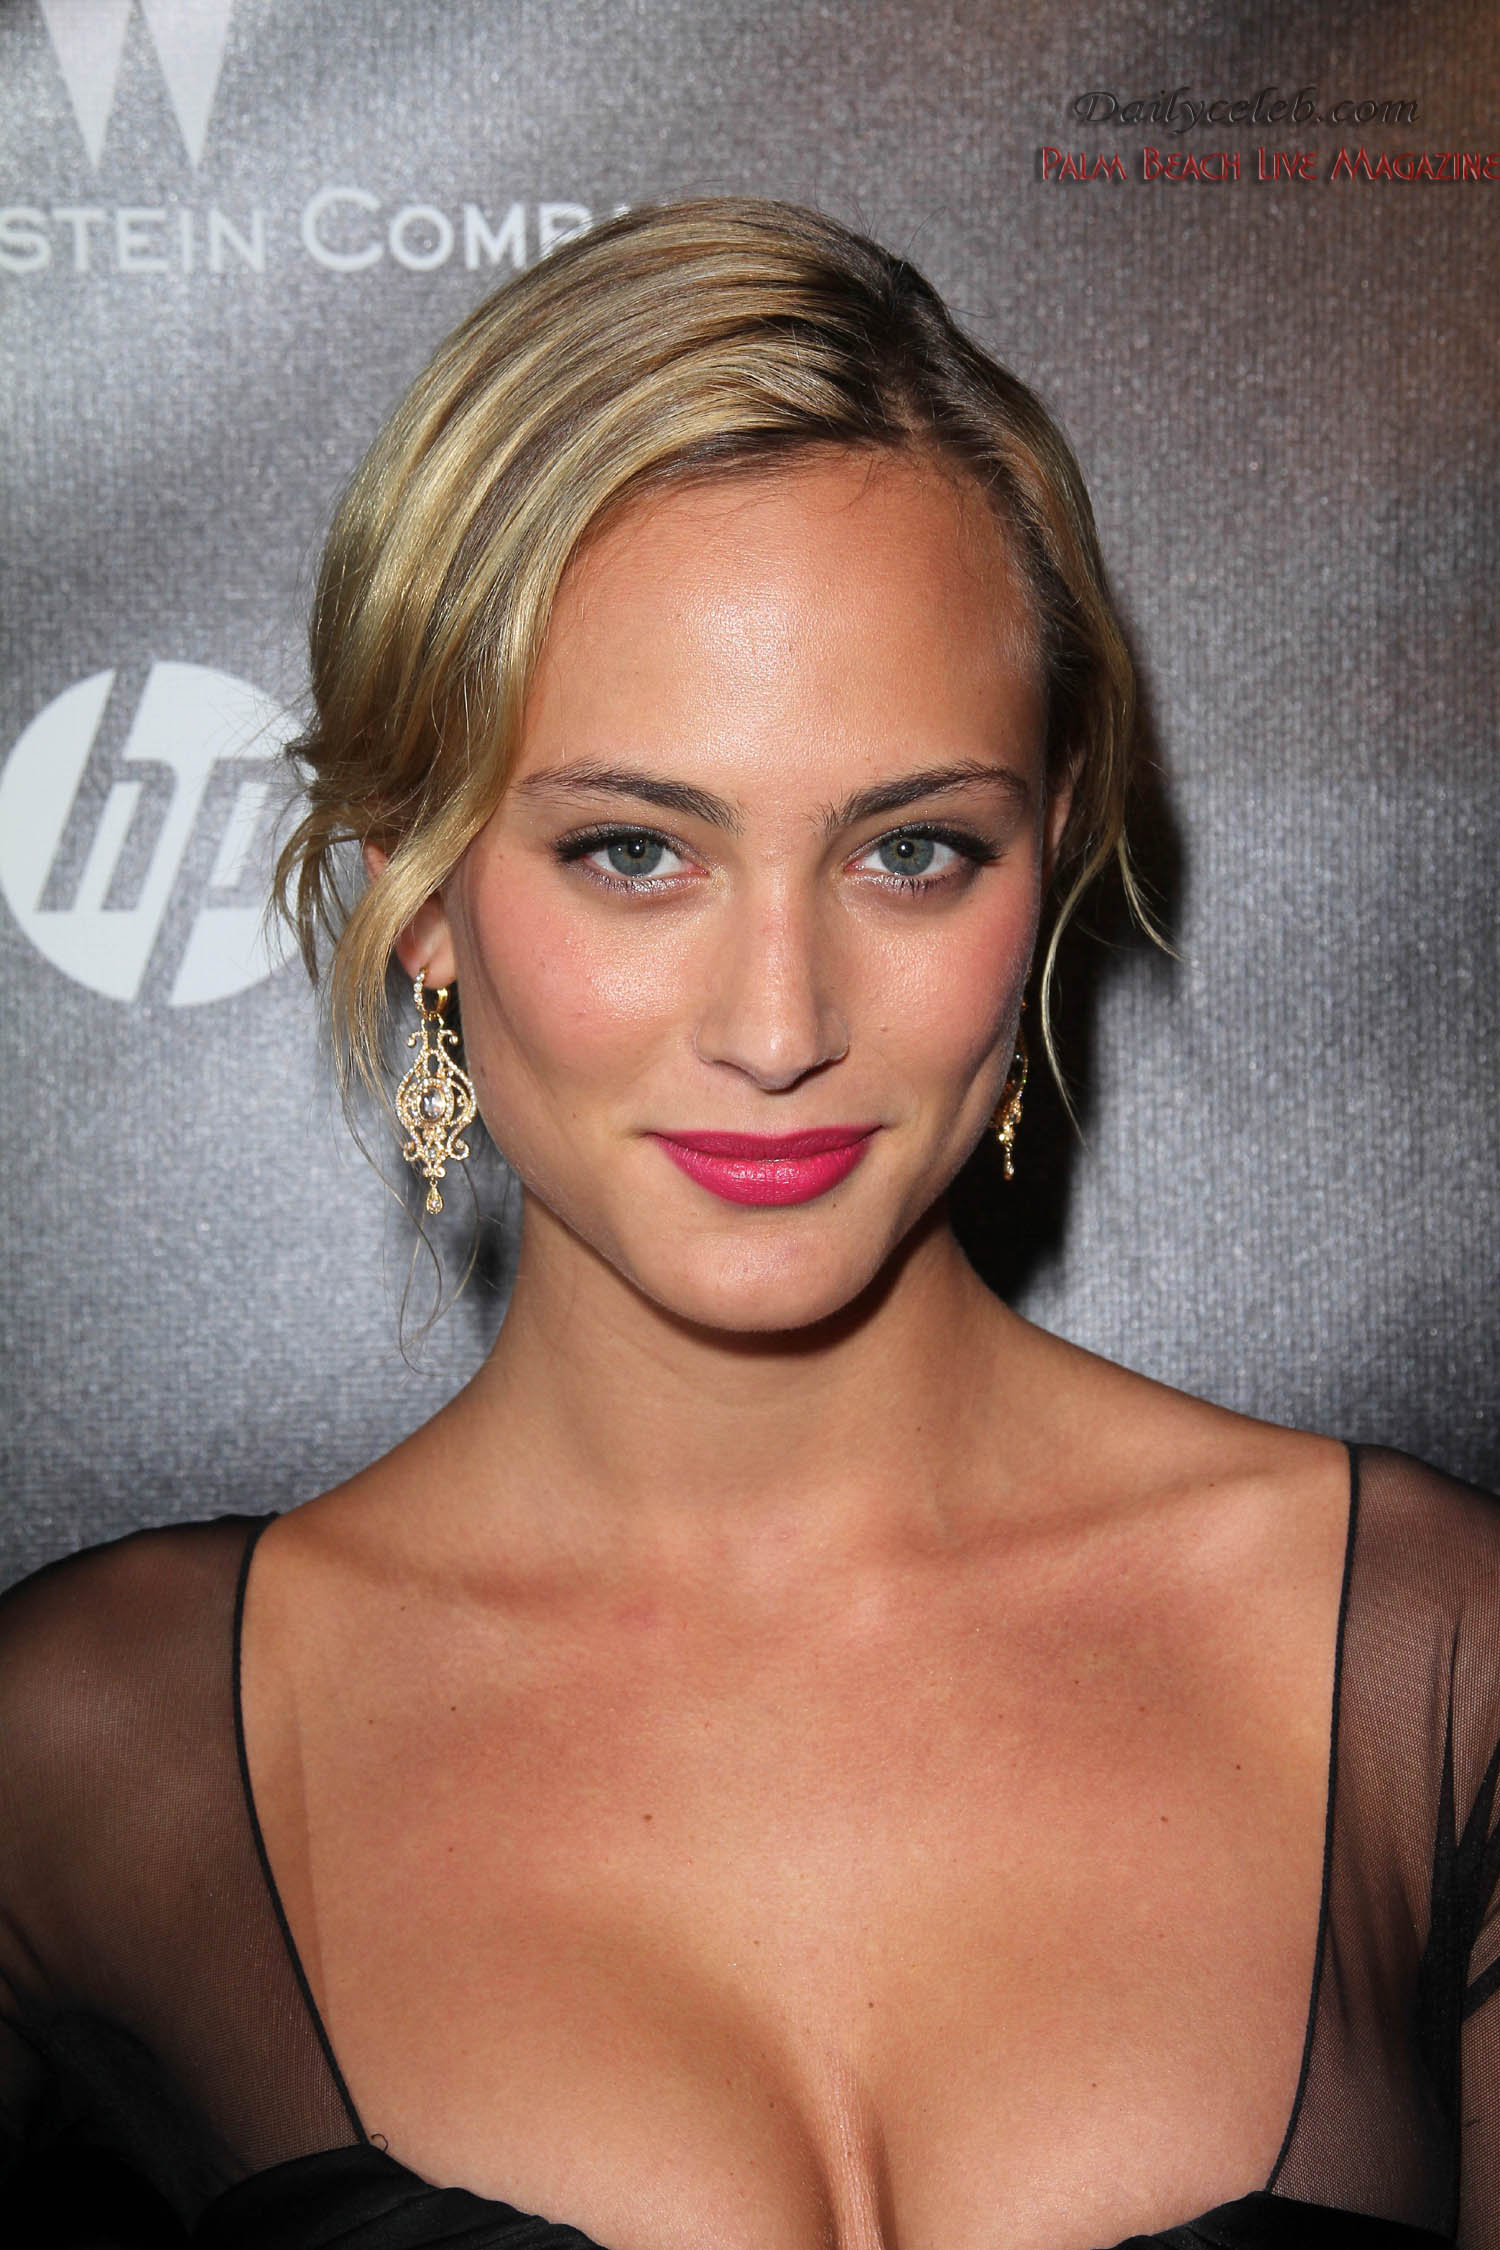 Images Nora Arnezeder nudes (21 photo), Tits, Hot, Twitter, bra 2017